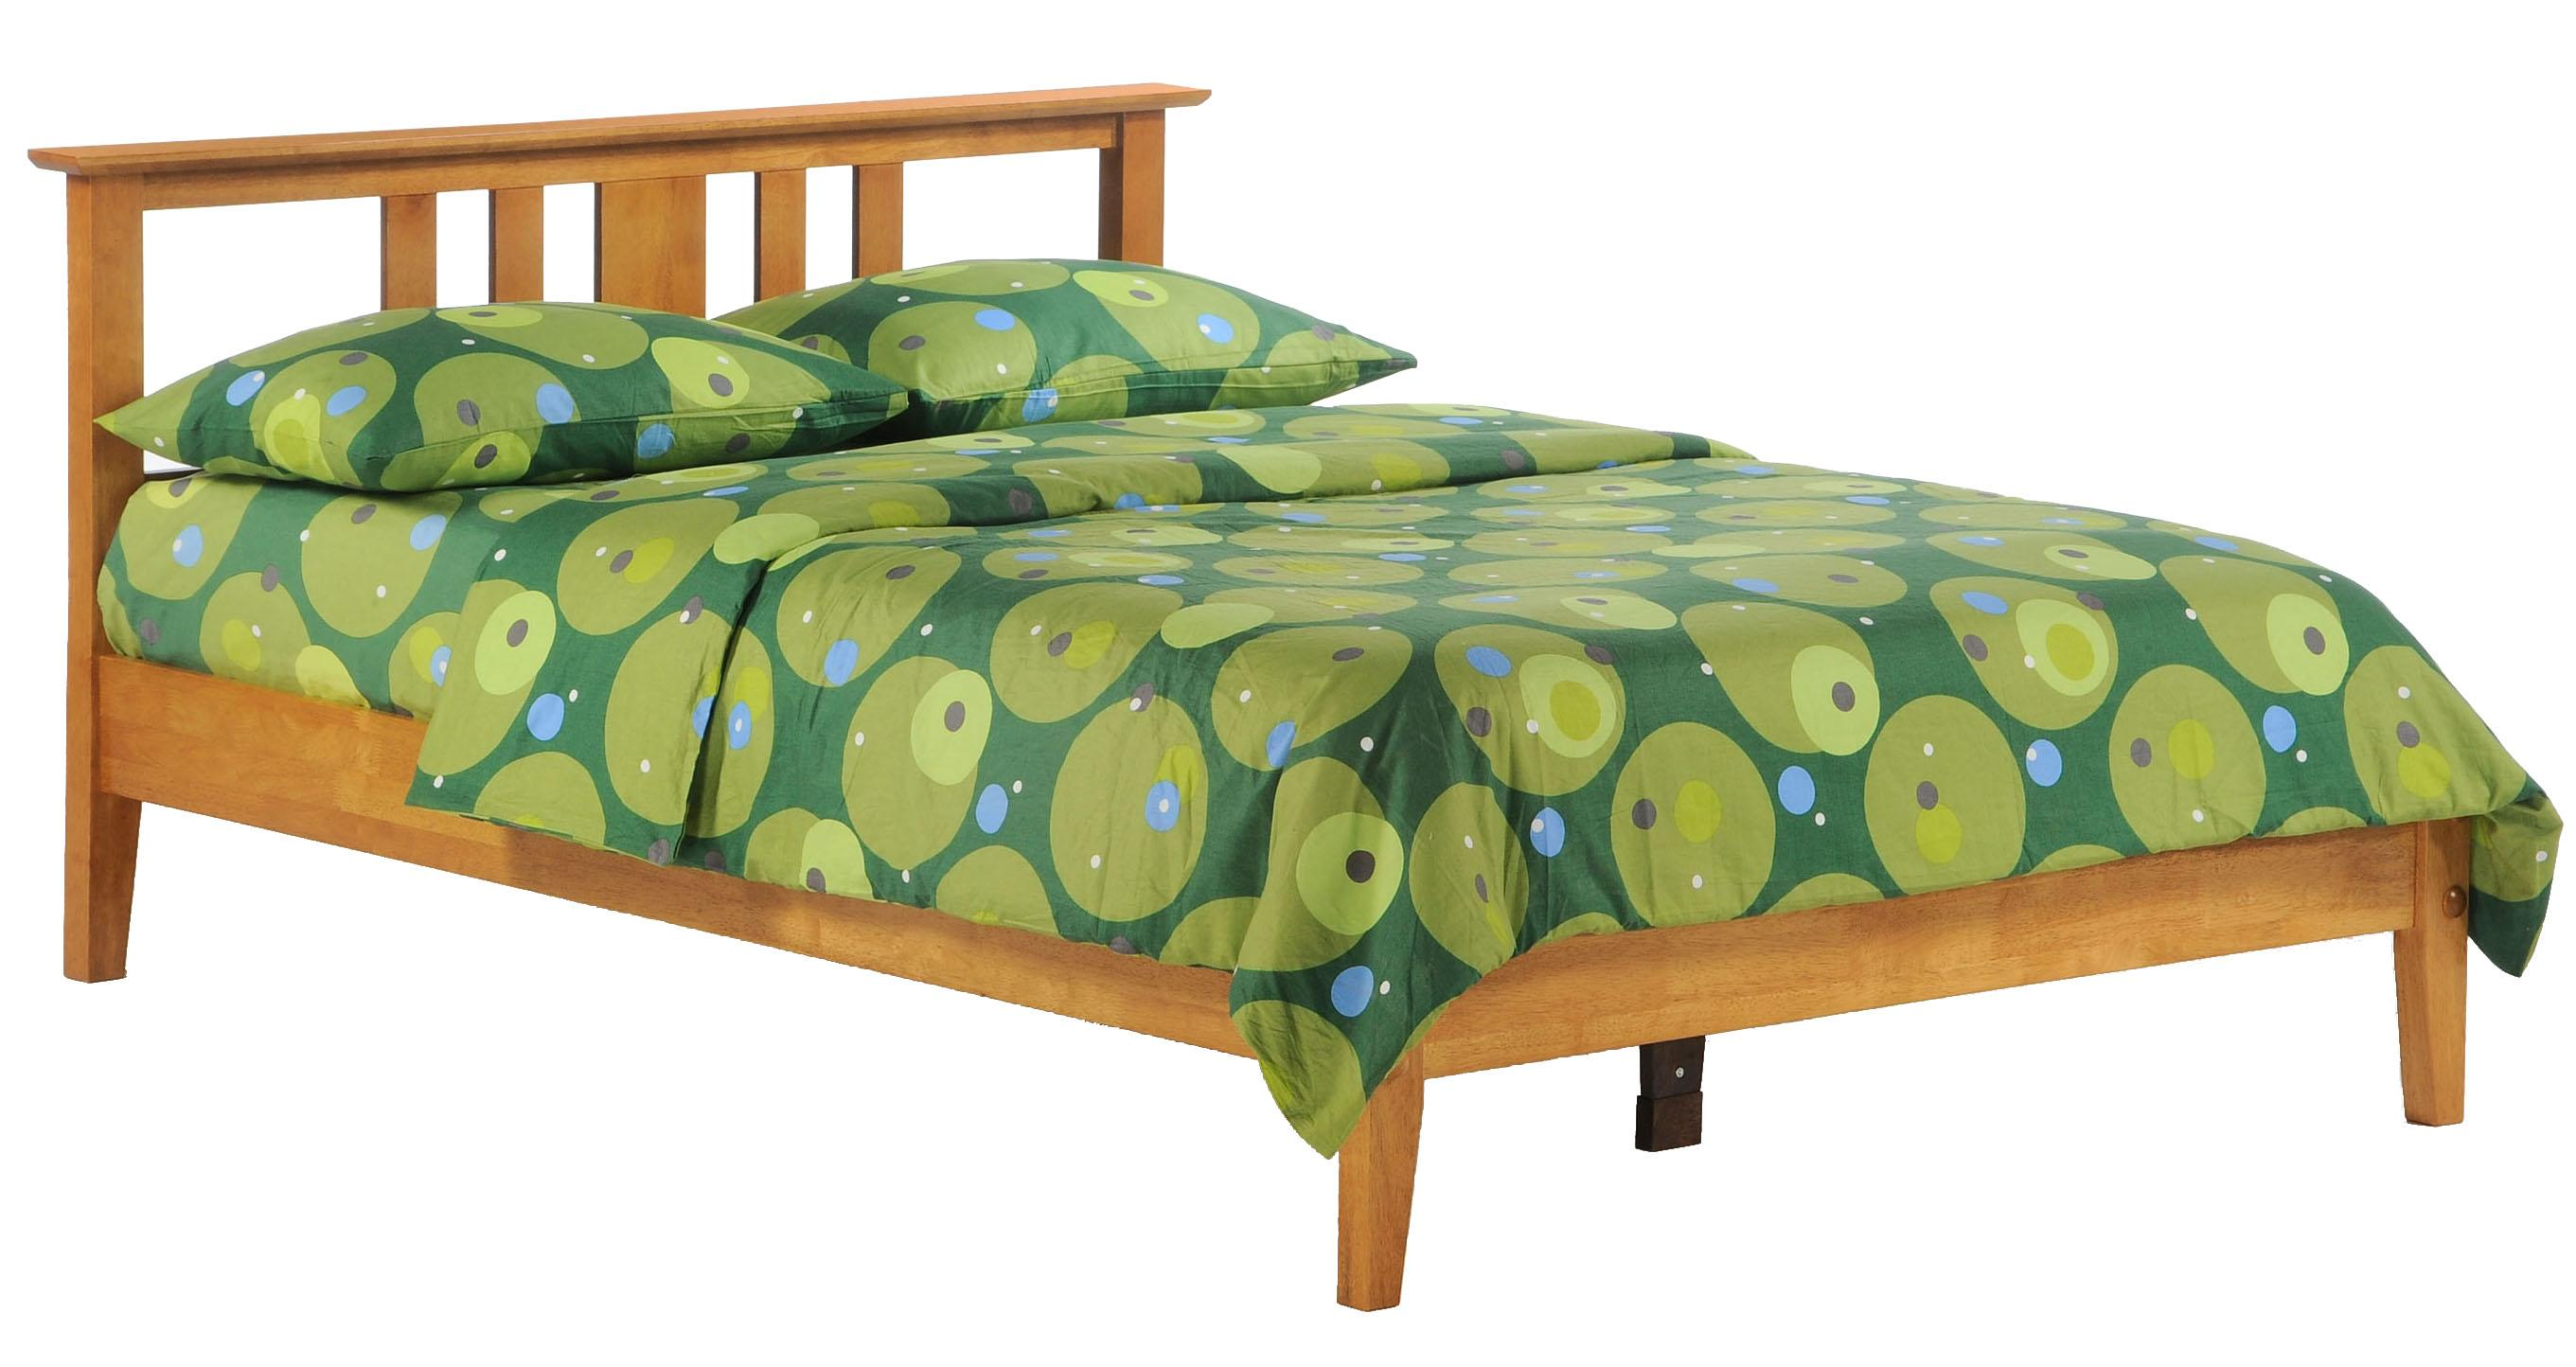 Spice California King Bed by Night & Day Furniture at Godby Home Furnishings